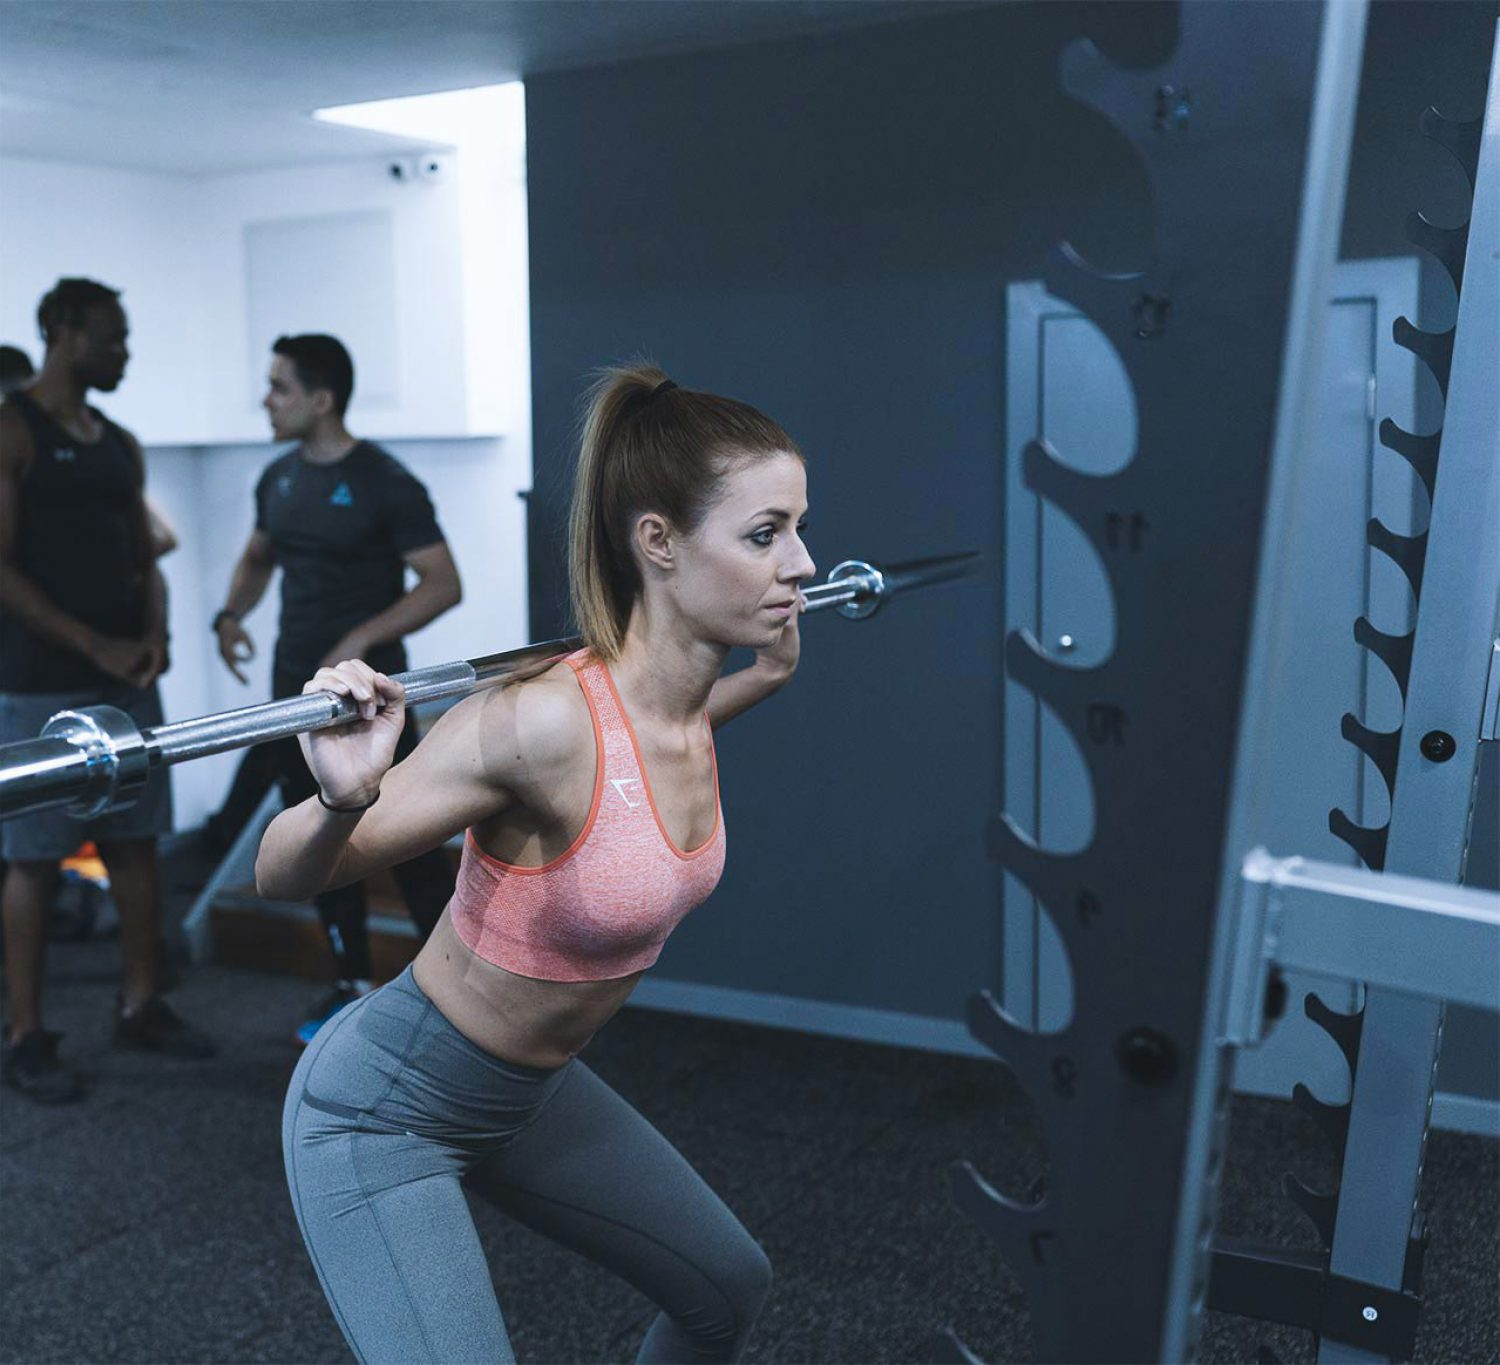 Delta fitness image 2